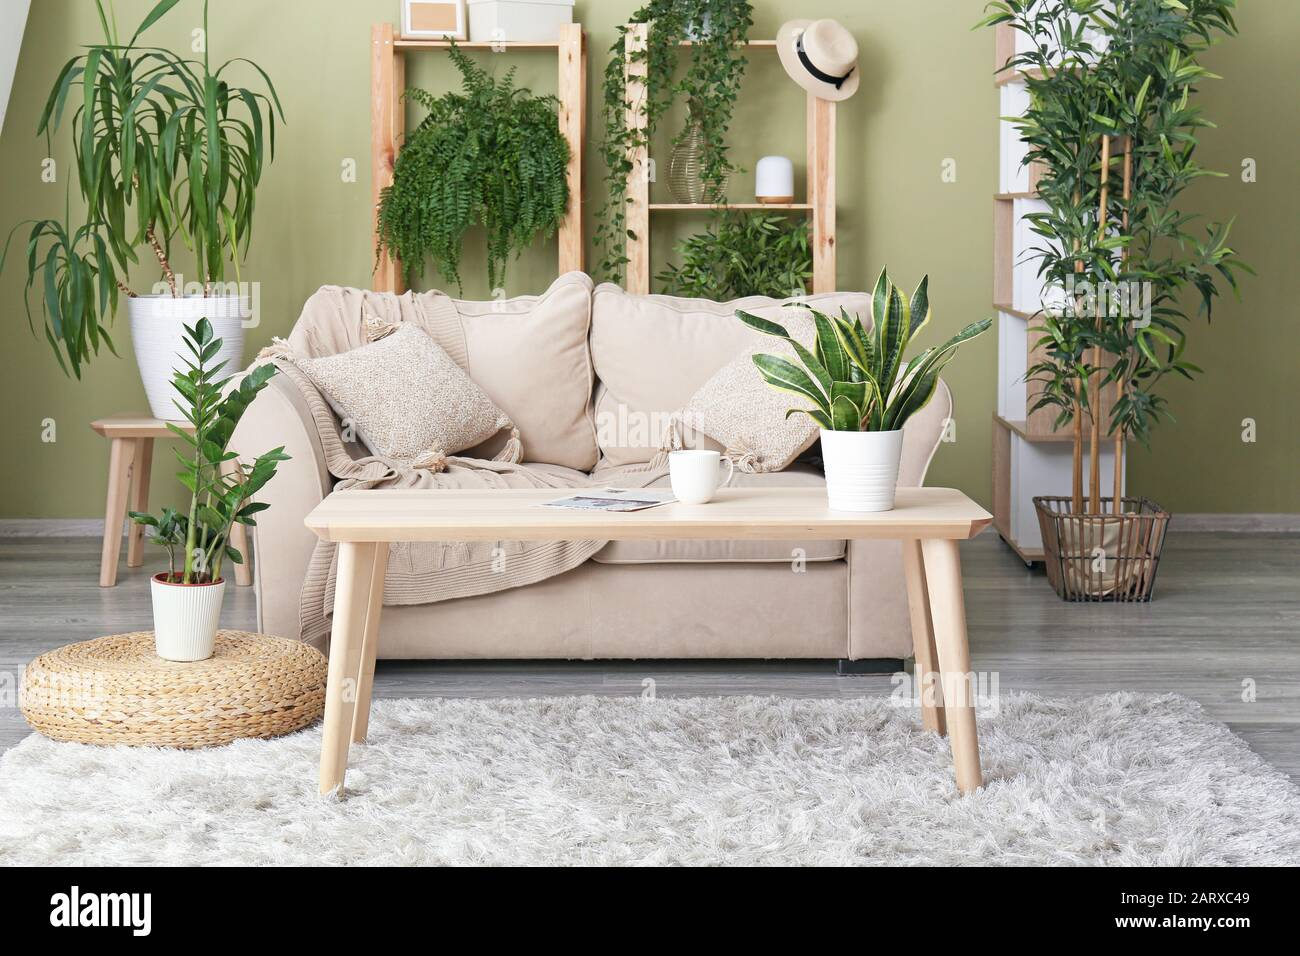 Interior of modern living room with green houseplants Stock Photo ...